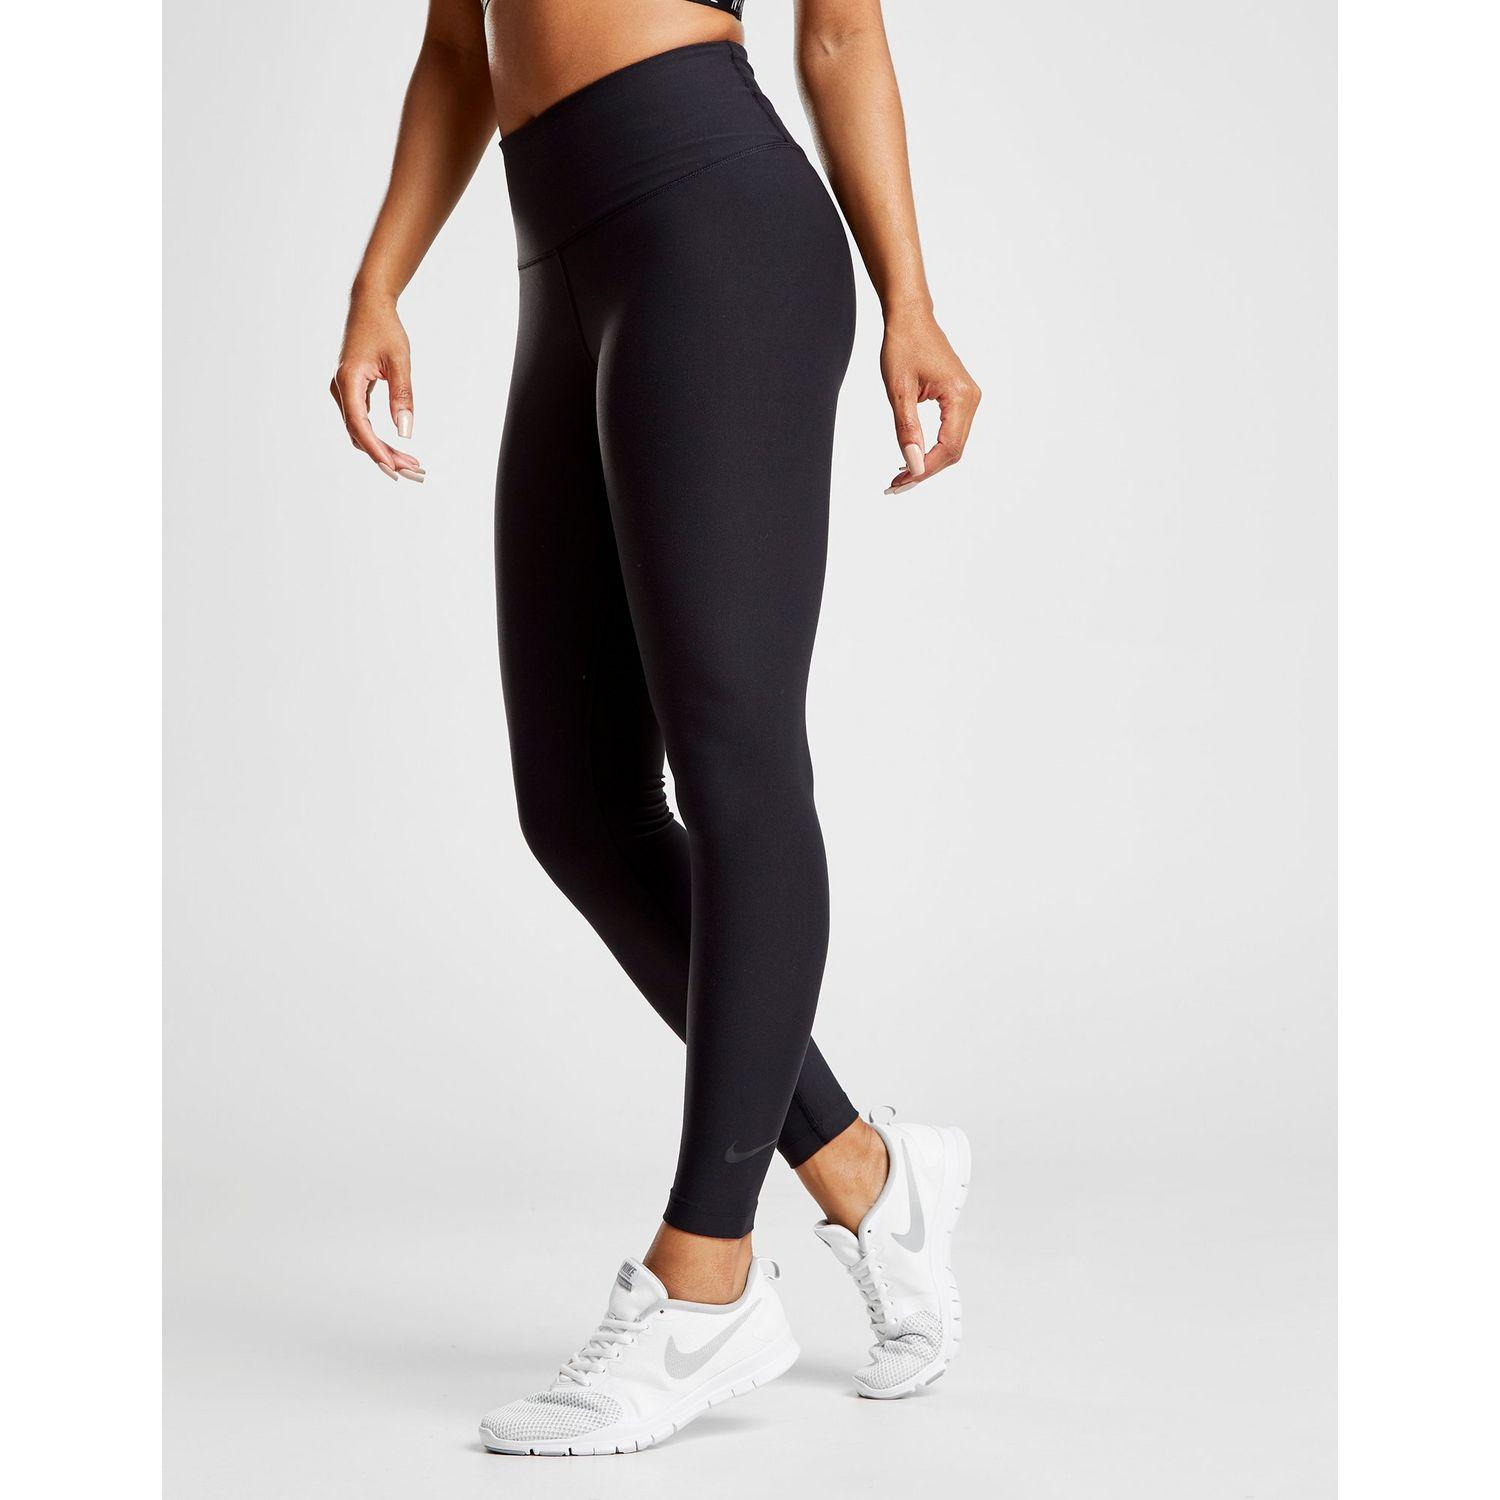 8226fa203c3b3 Nike - Black Sculpt Hyper Training Tights - Lyst. View fullscreen